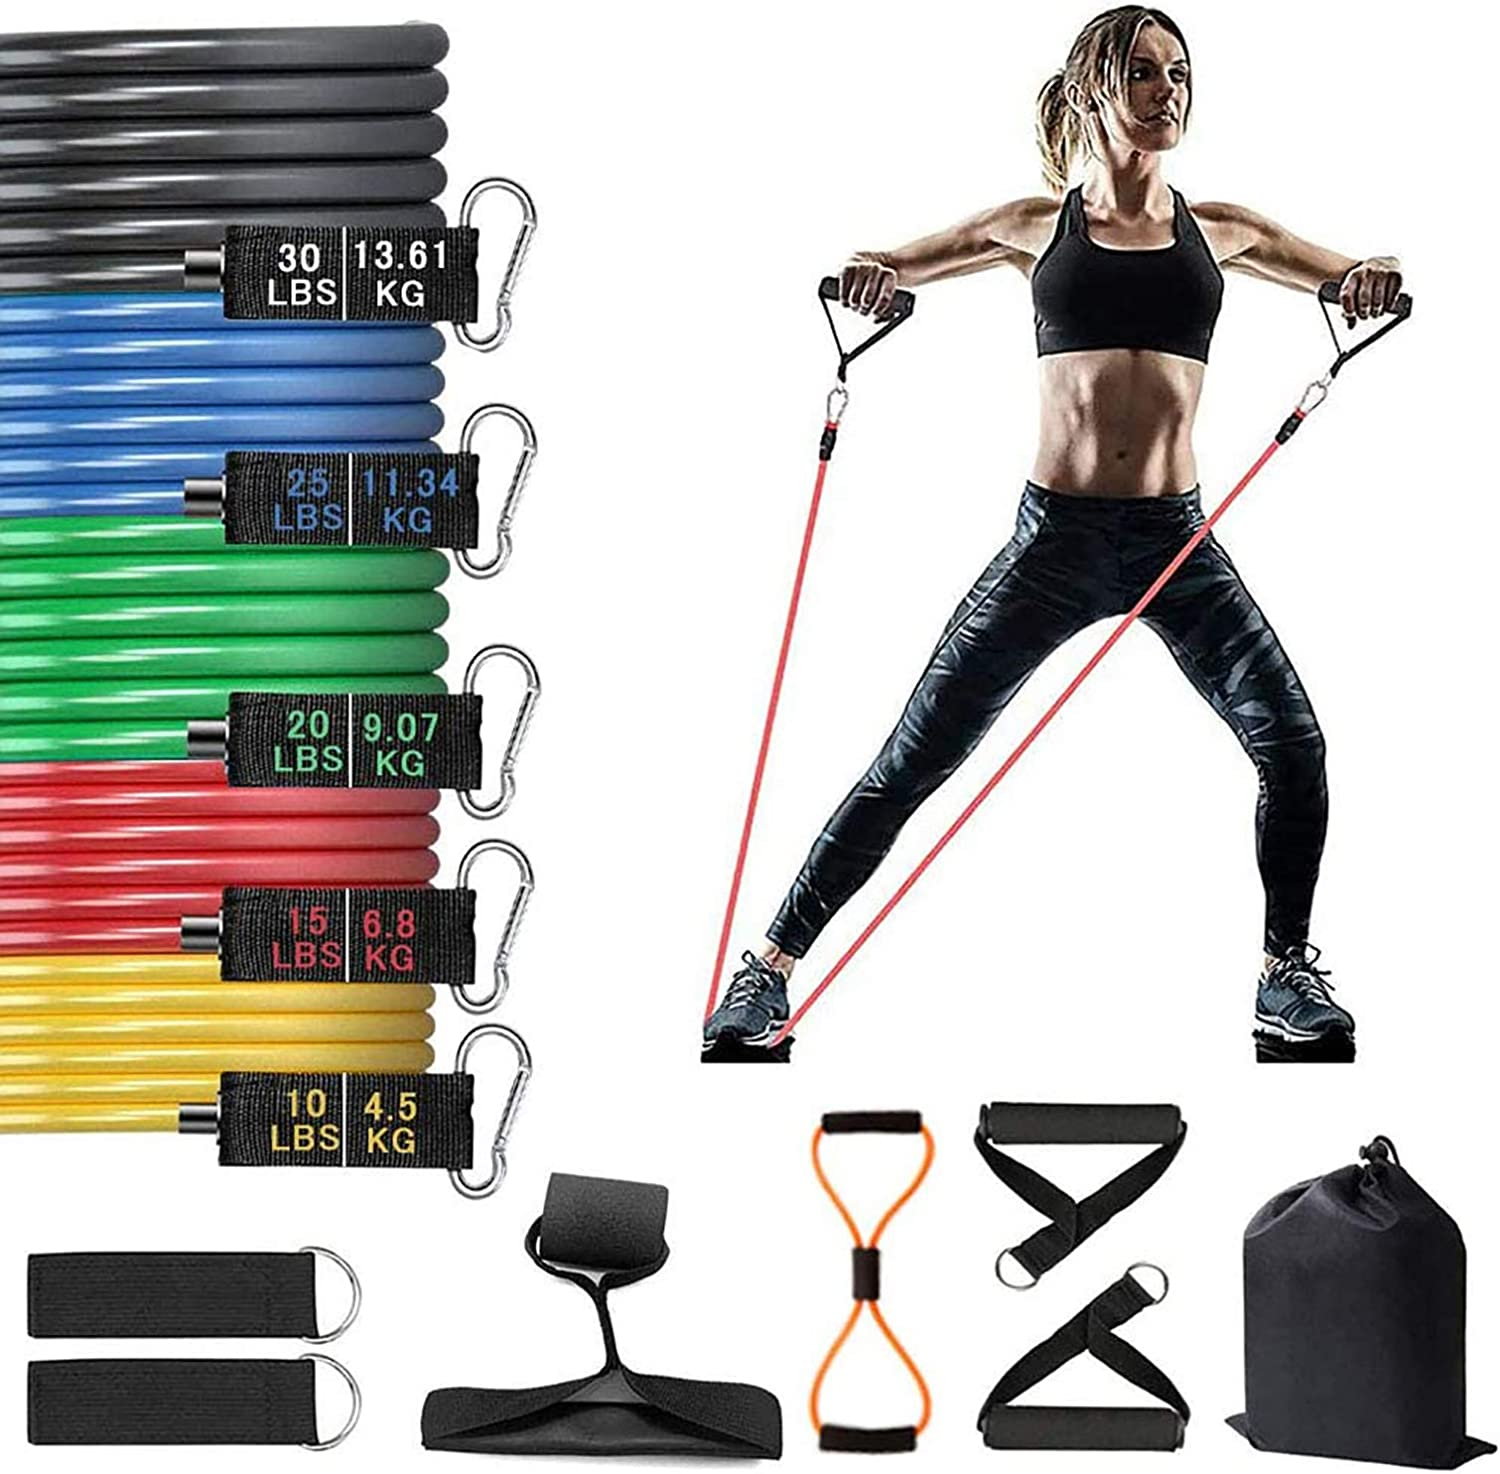 QE Resistance Bands Set Fitness Workout Bands Include Fitness Tubes with Door Anchor, Foam Handle, Ankle Strap, Carry Bag for Home Workouts, Physical Therapy, Gym Training,Yoga